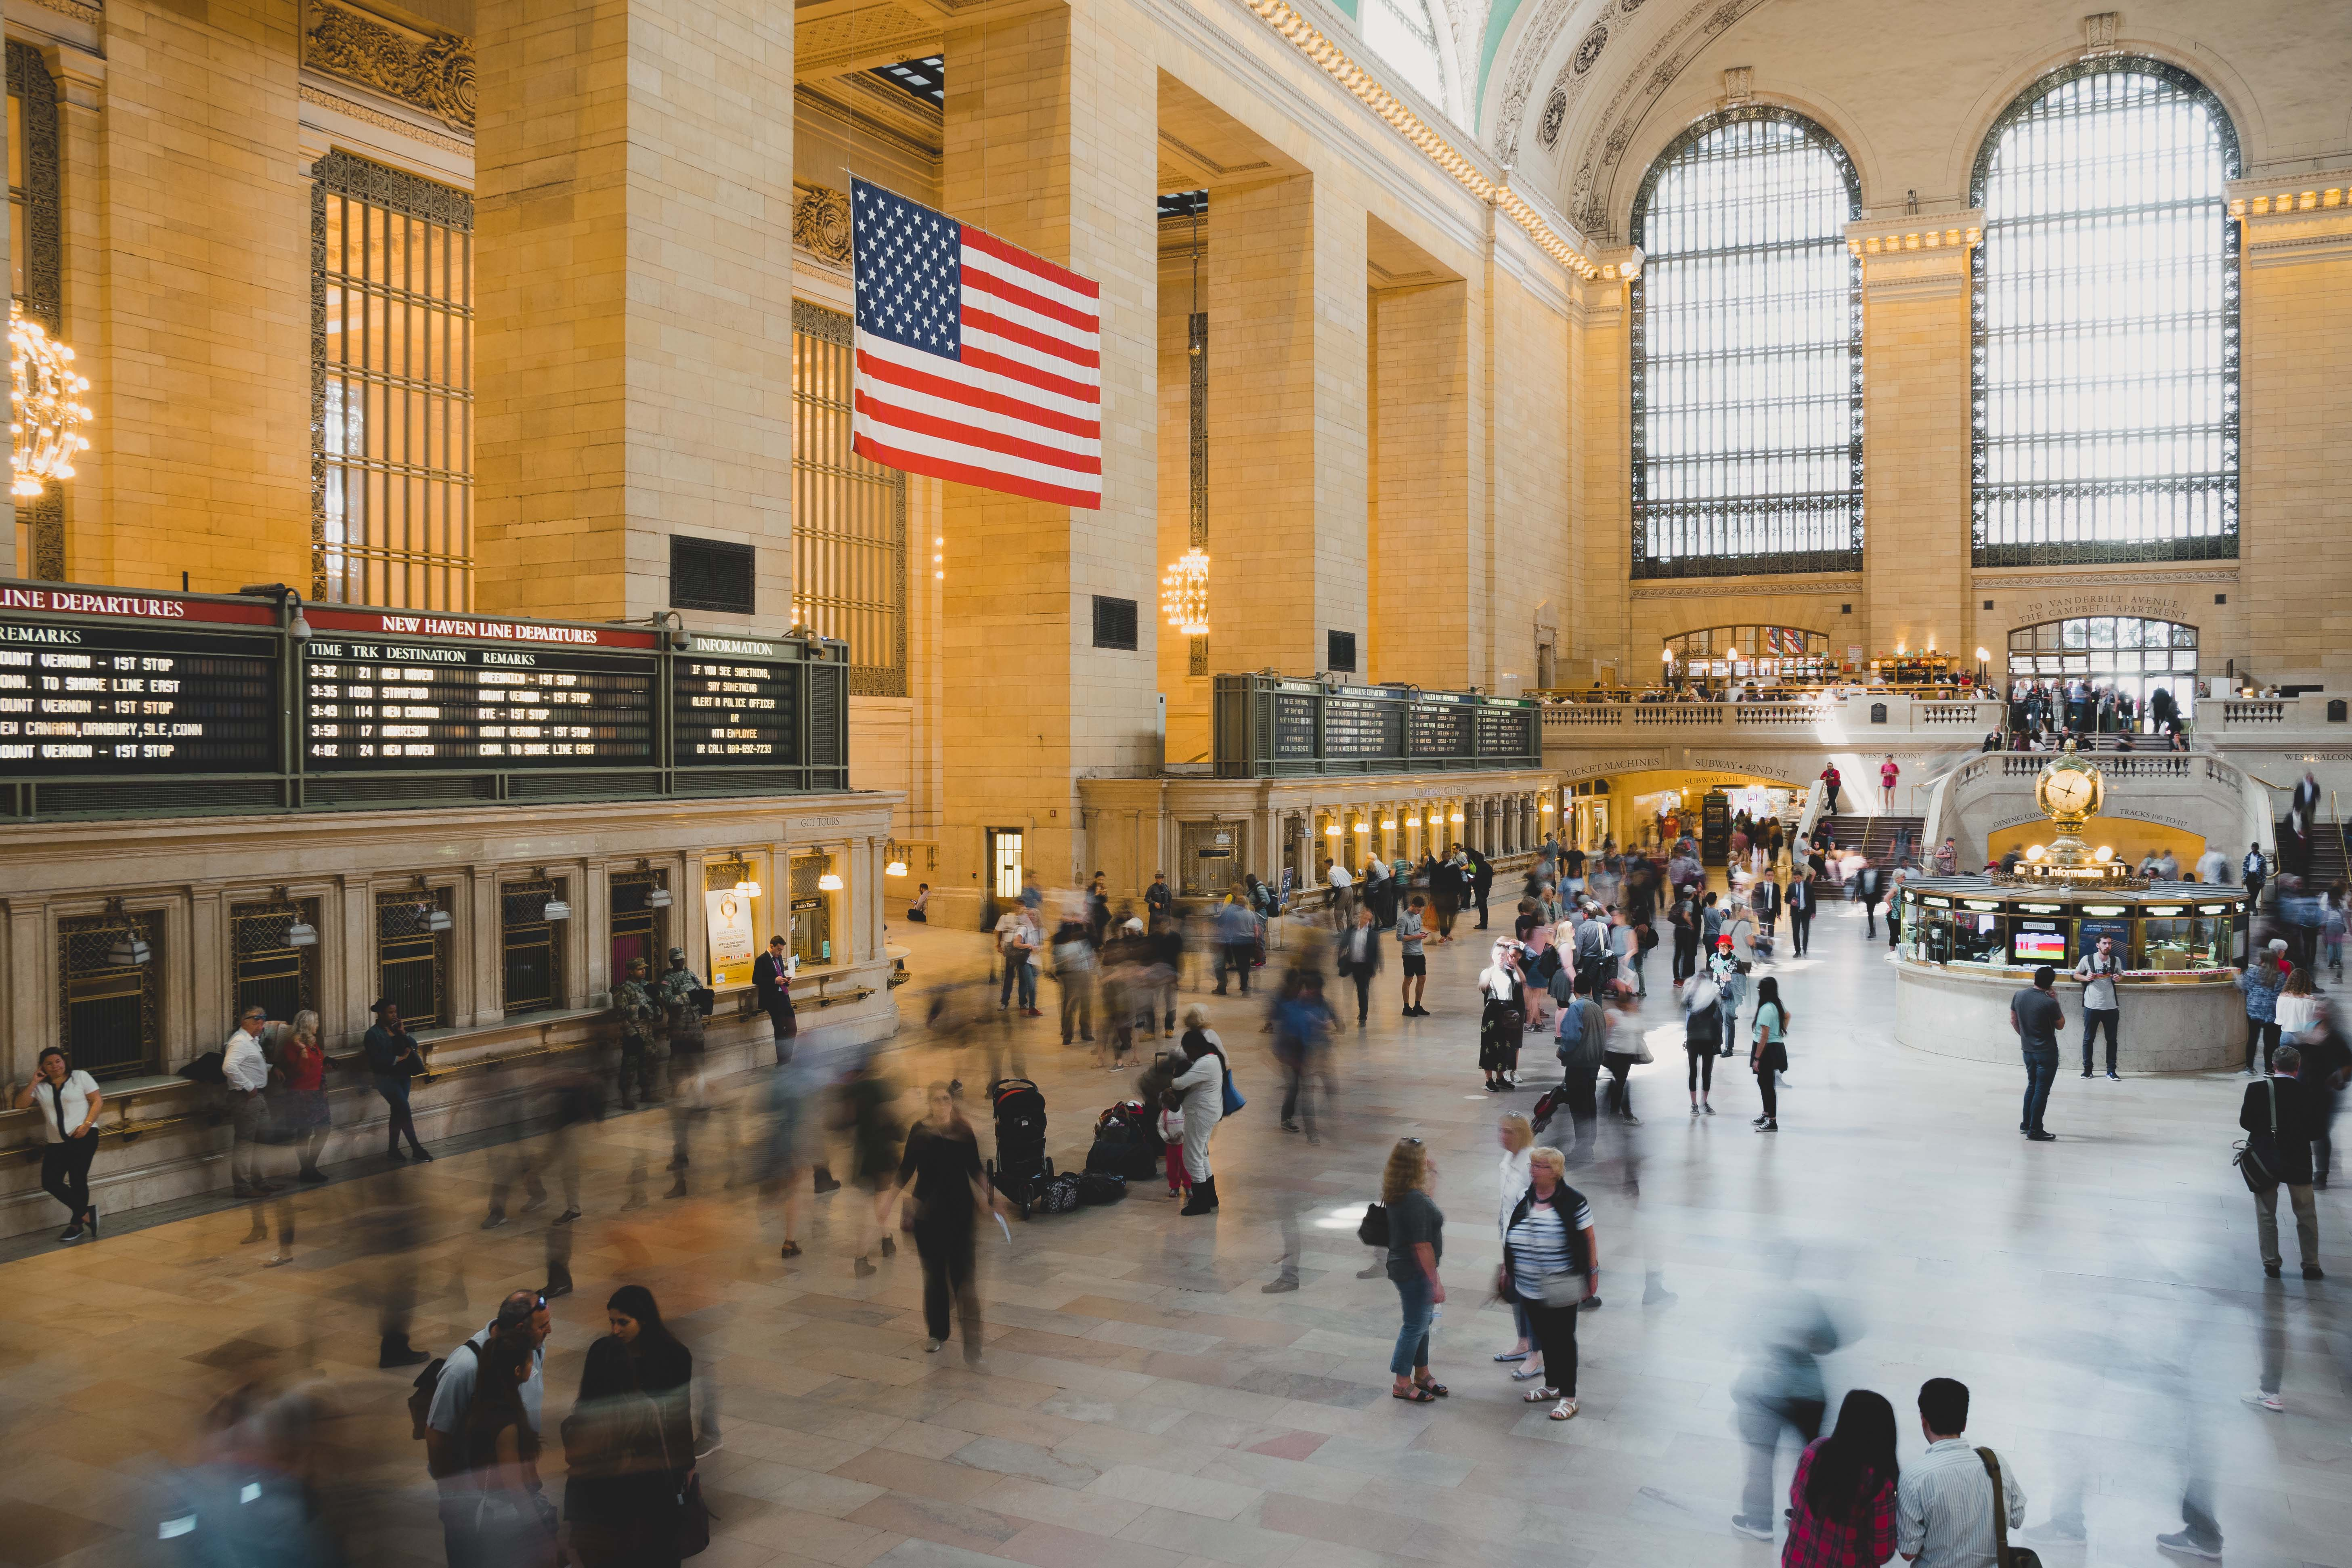 View of main hall in Grand Central long exposure with people moving quickly below the American flag and large windows